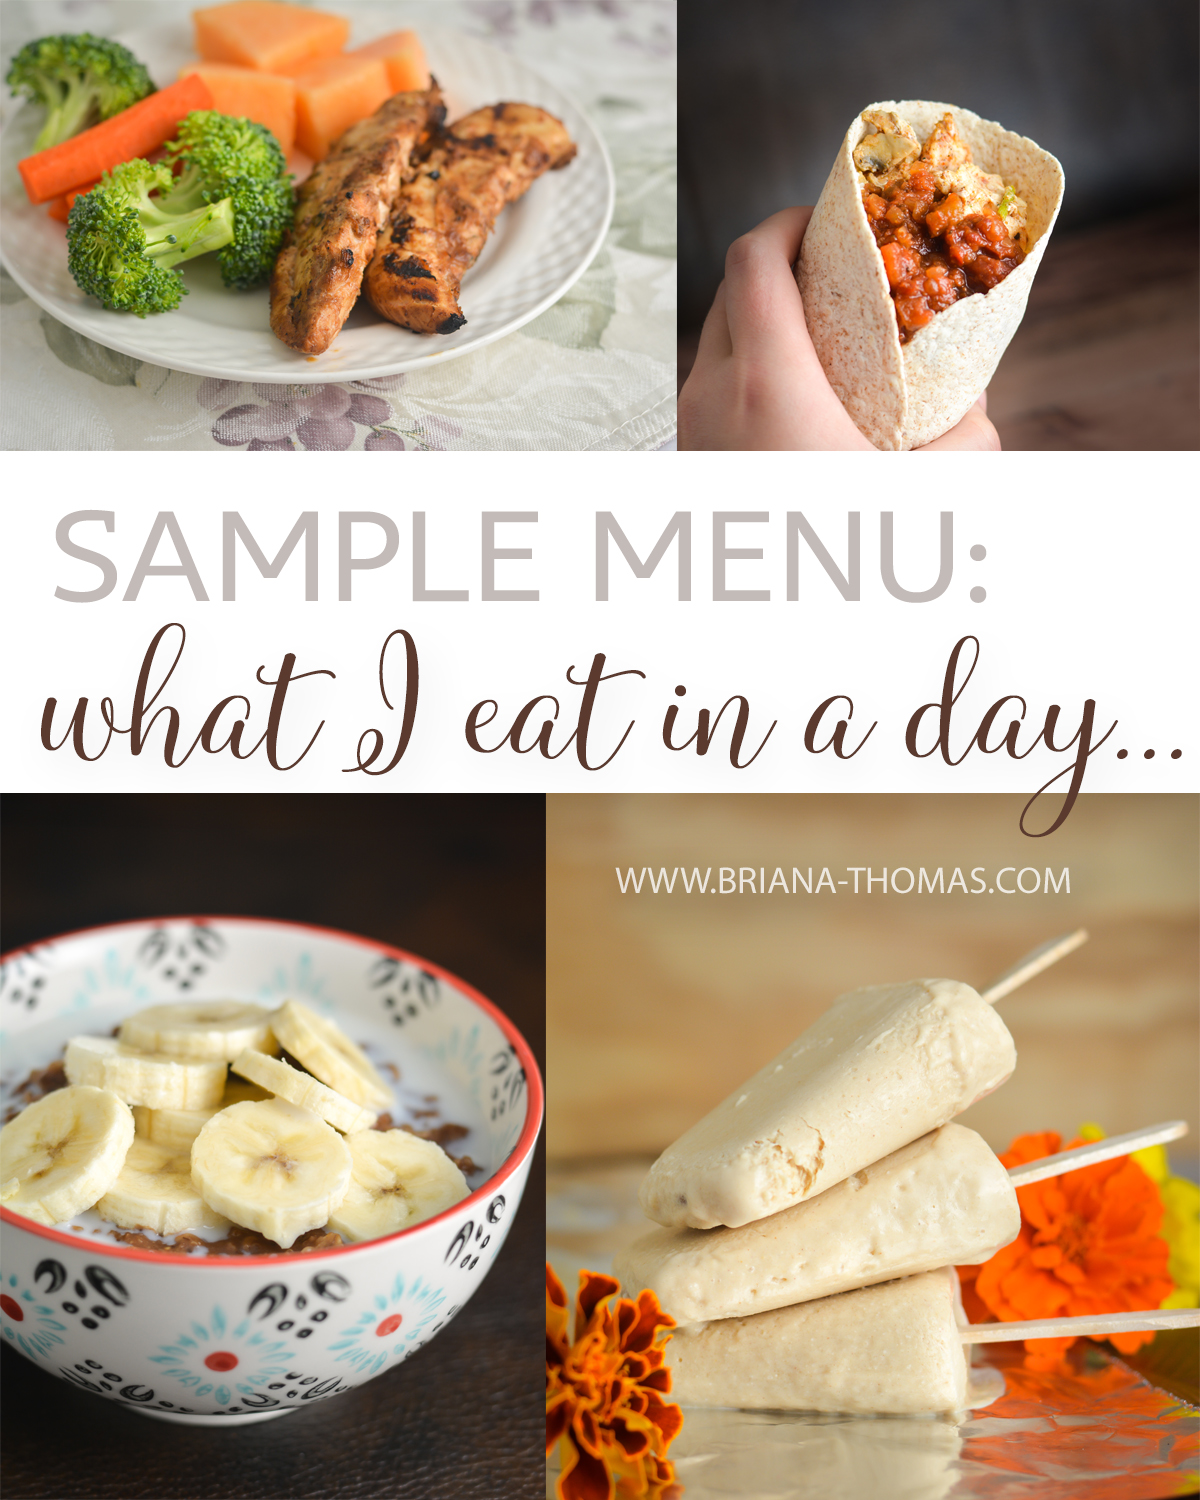 I've been making some changes to my menu based on what I've been learning about my body, so here's a THM-friendly sample menu for what I eat in a day!